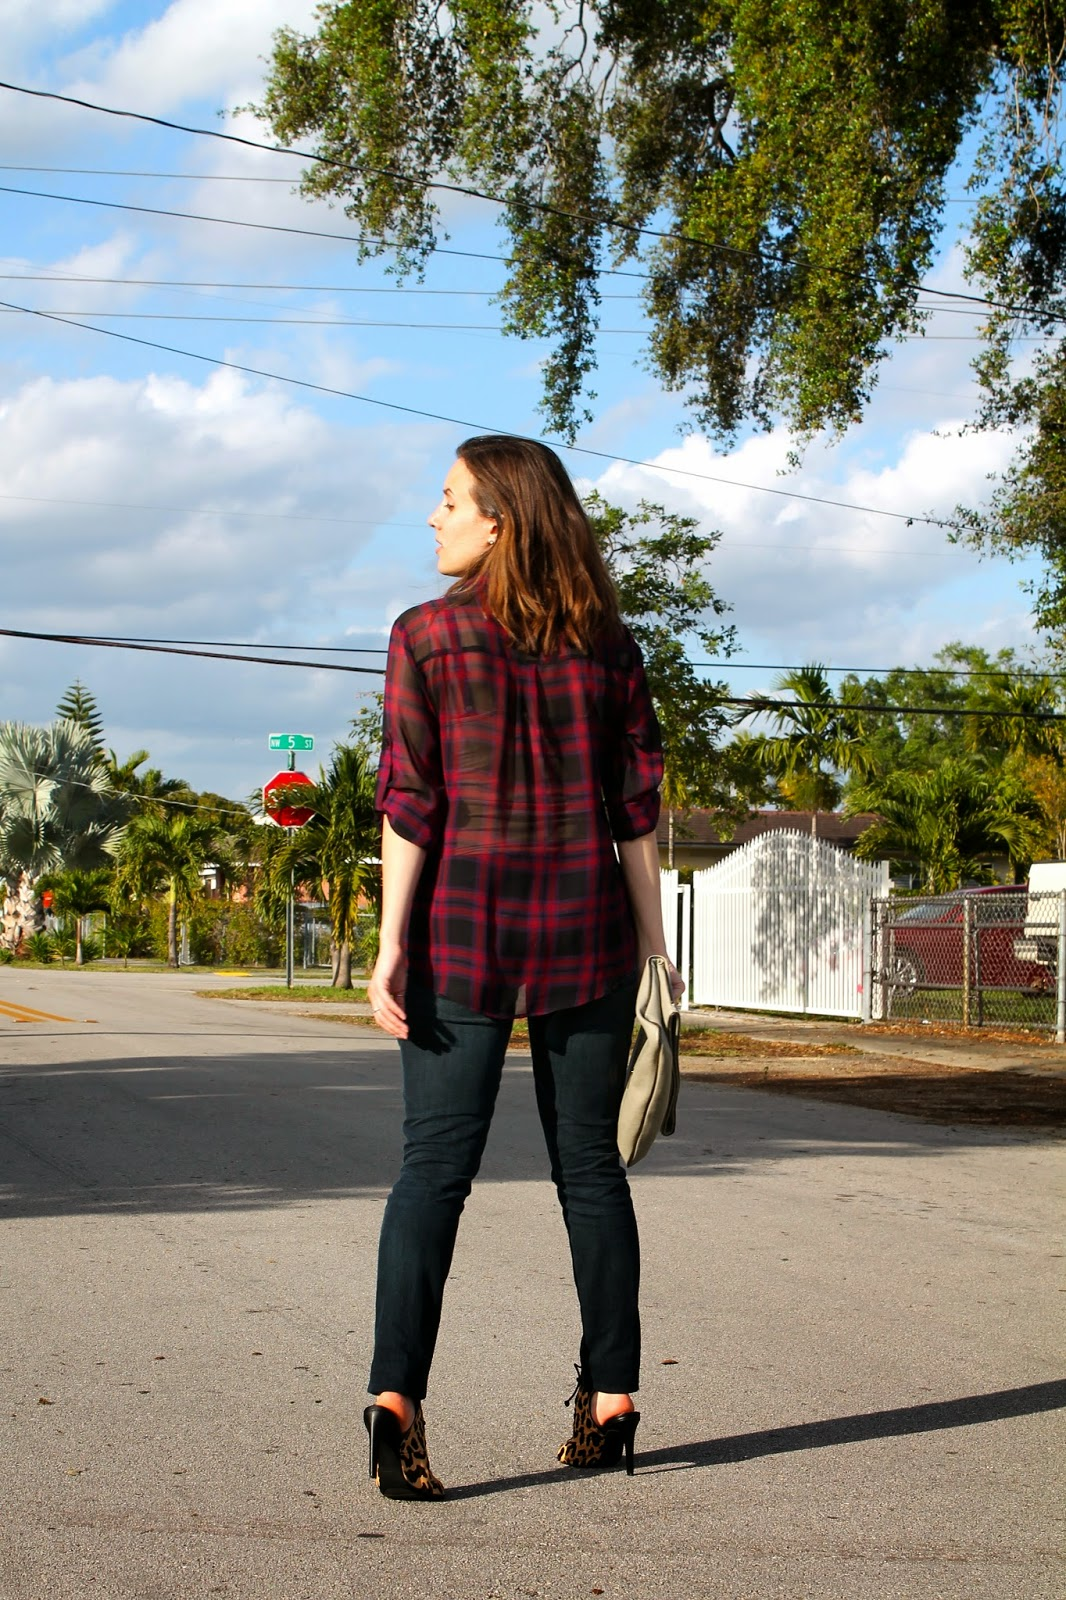 express, forever 21, Levi's, LF Stores, Bar III, Macy's, Lord and Taylor, Charming Charlie, style blog, ootd, what I wore, fashion blog, fashion blogger